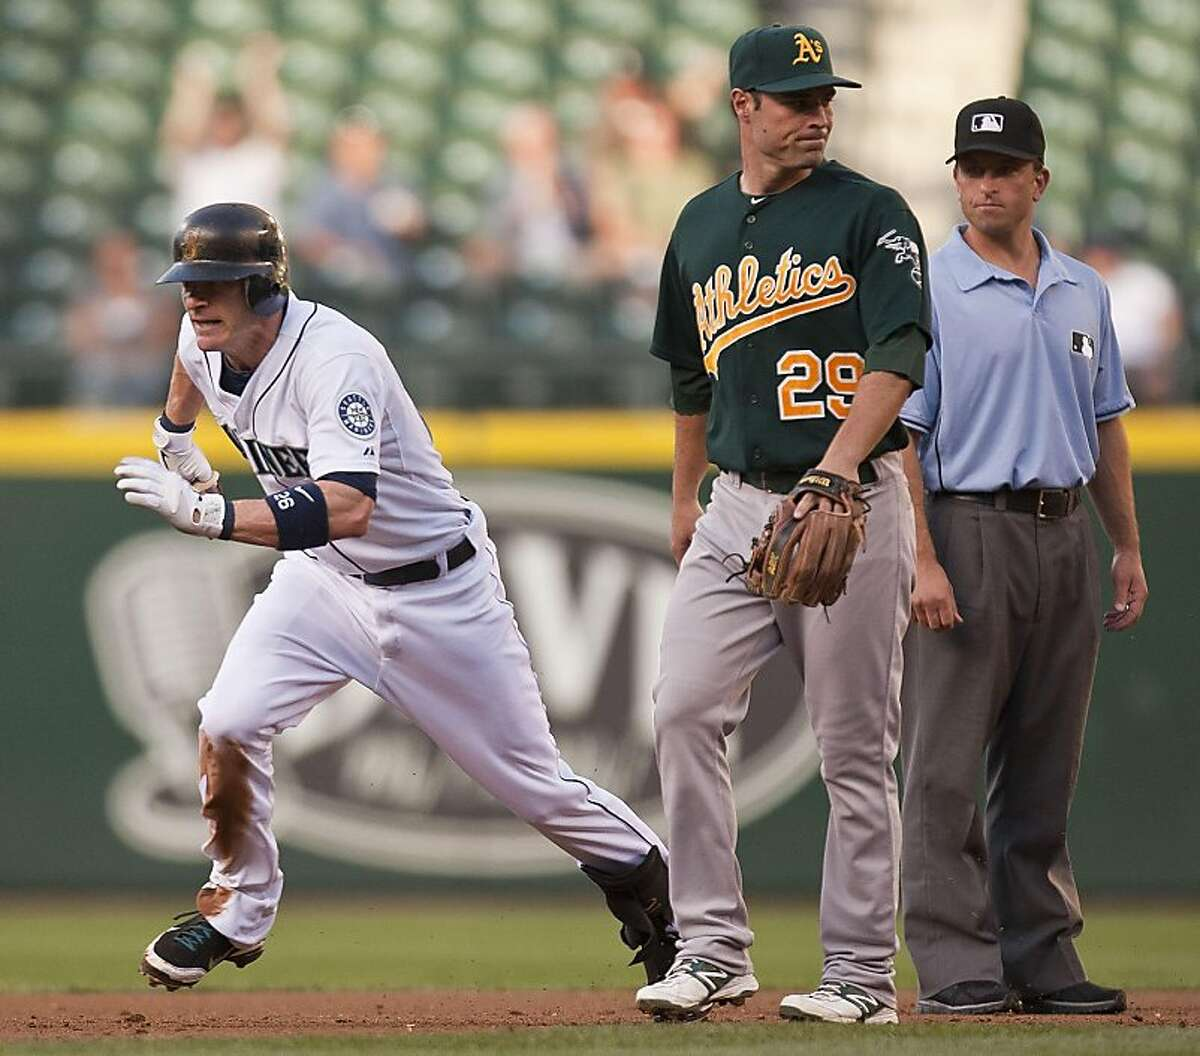 With the Oakland Athletics' attention elsewhere, Seattle Mariners baserunner Brendan Ryan, left, spots an opportunity to advance a base in the first inning on Tuesday, August 2, 2011, at Safeco Field in Seattle, Washington.